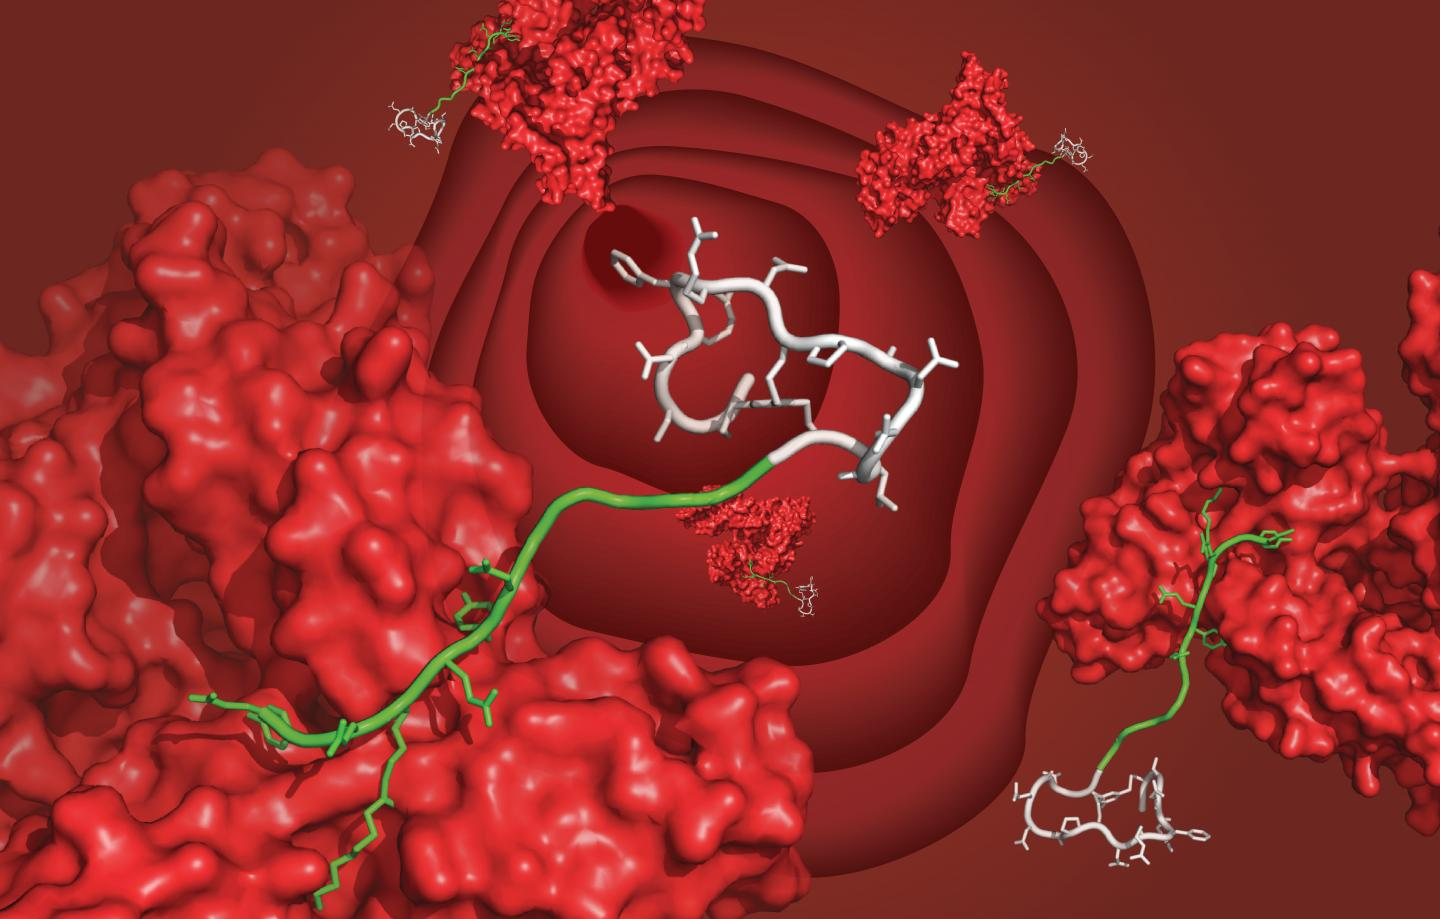 A bicyclic peptide (white) bound to serum albumin (red) through the newly developed ligand (green), floating in the bloodstream. [C. Heinis/EPFL]